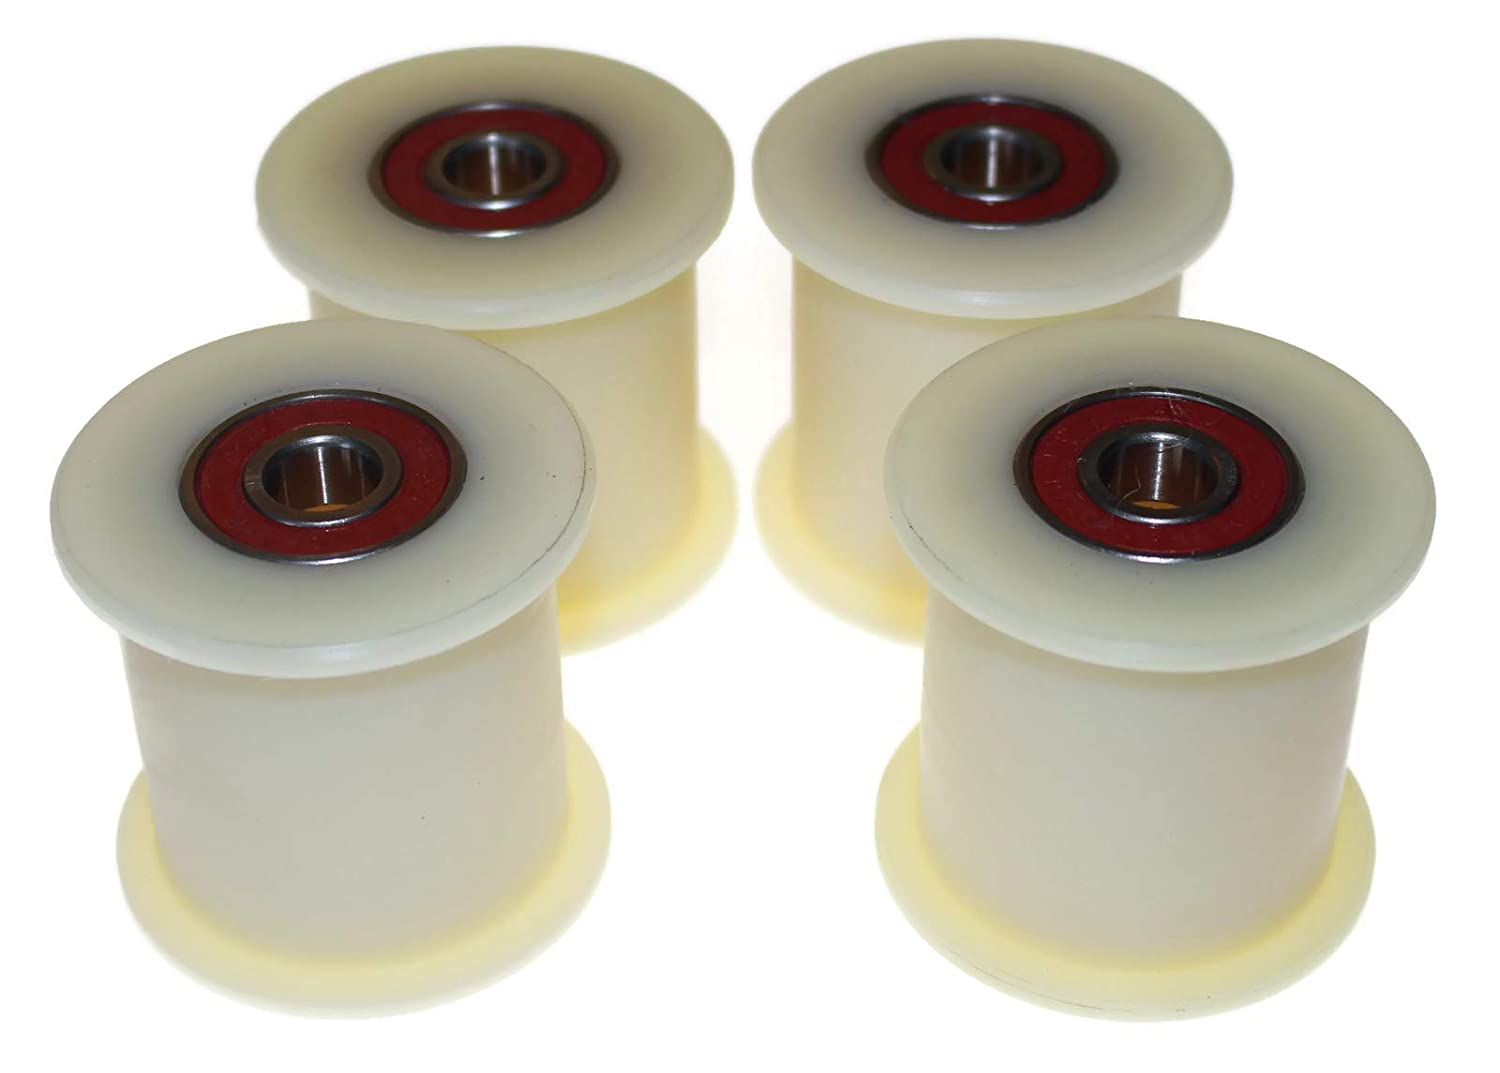 60-50-12 Pack of 4 x Nylon Belt Idler 60 mm diameter 50 mm Groove 12 mm bearing Precisely Machined in the EU